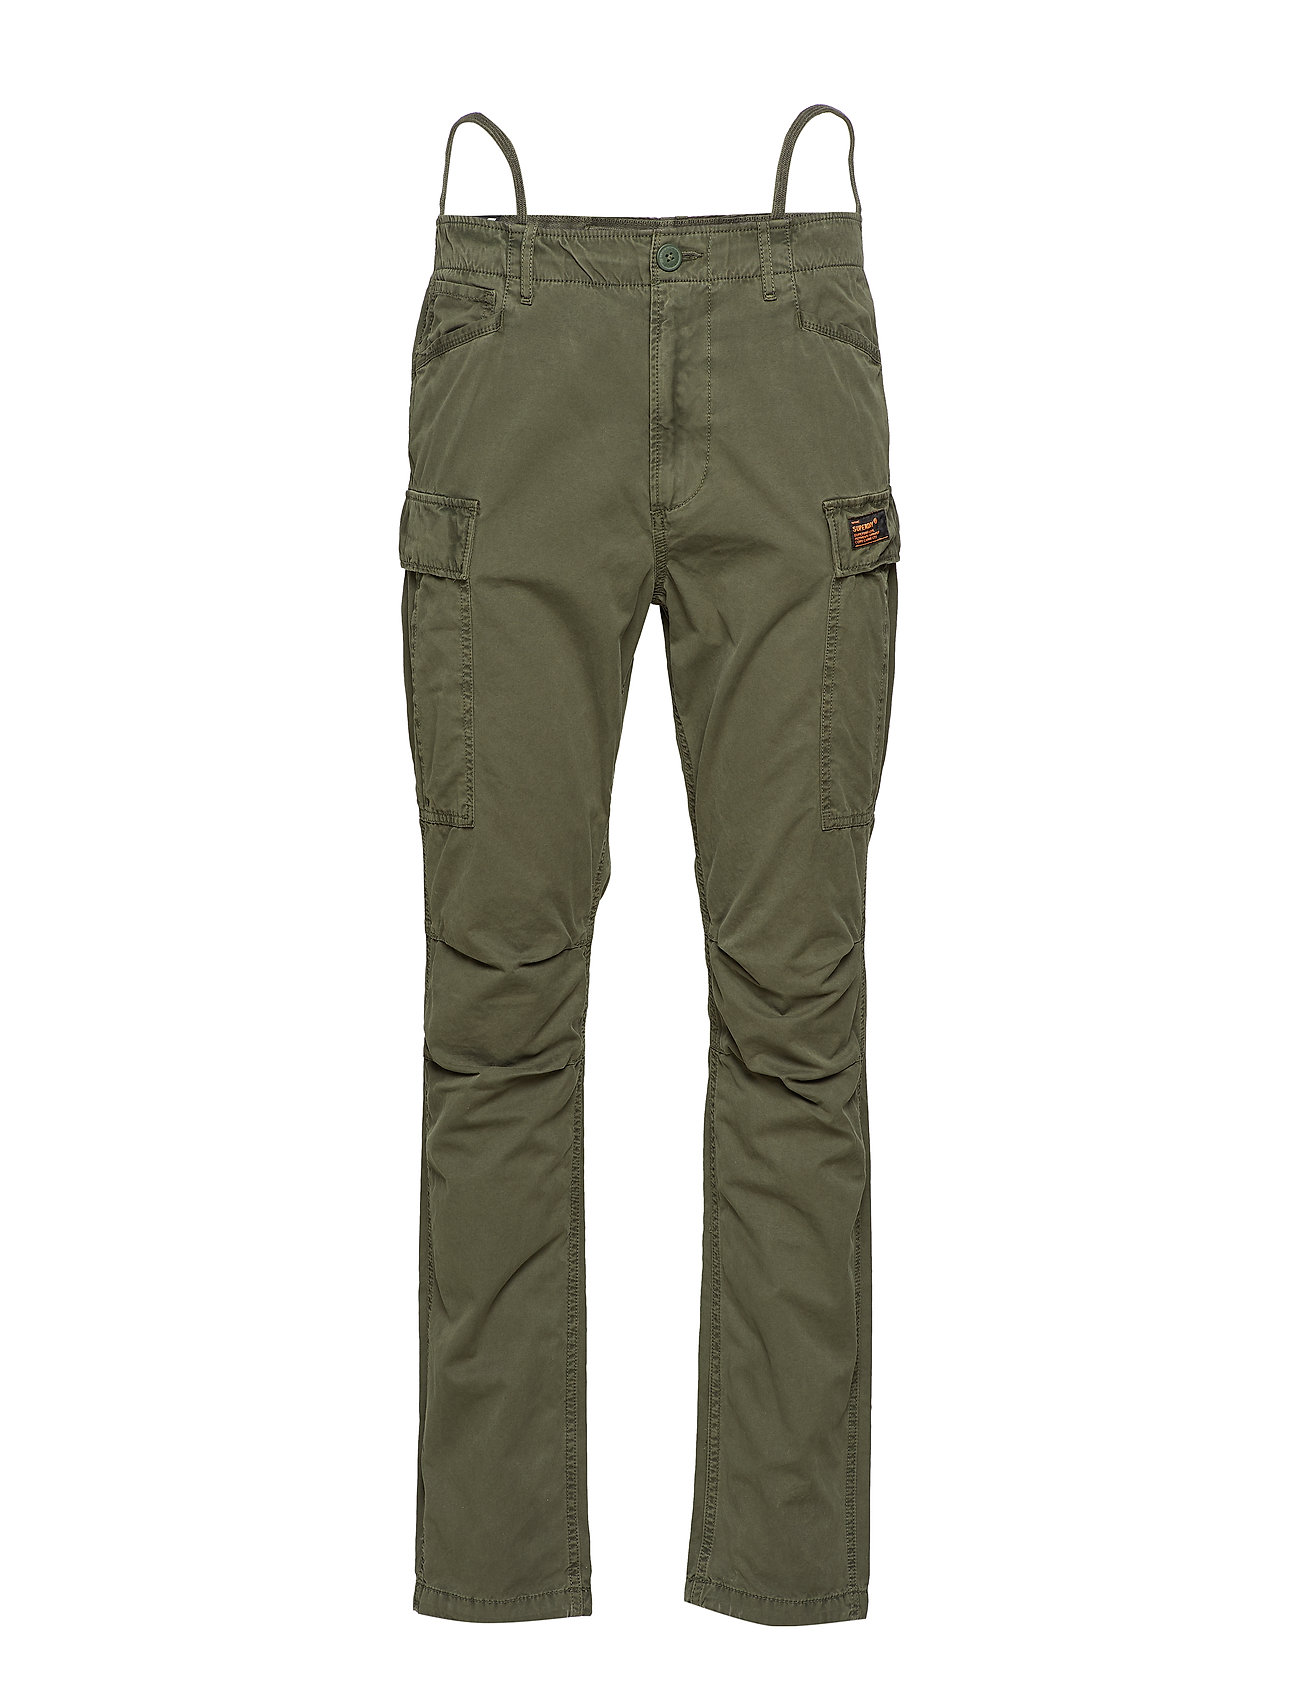 Image of Core Cargo Pant Trousers Cargo Pants Grøn Superdry (3102802045)